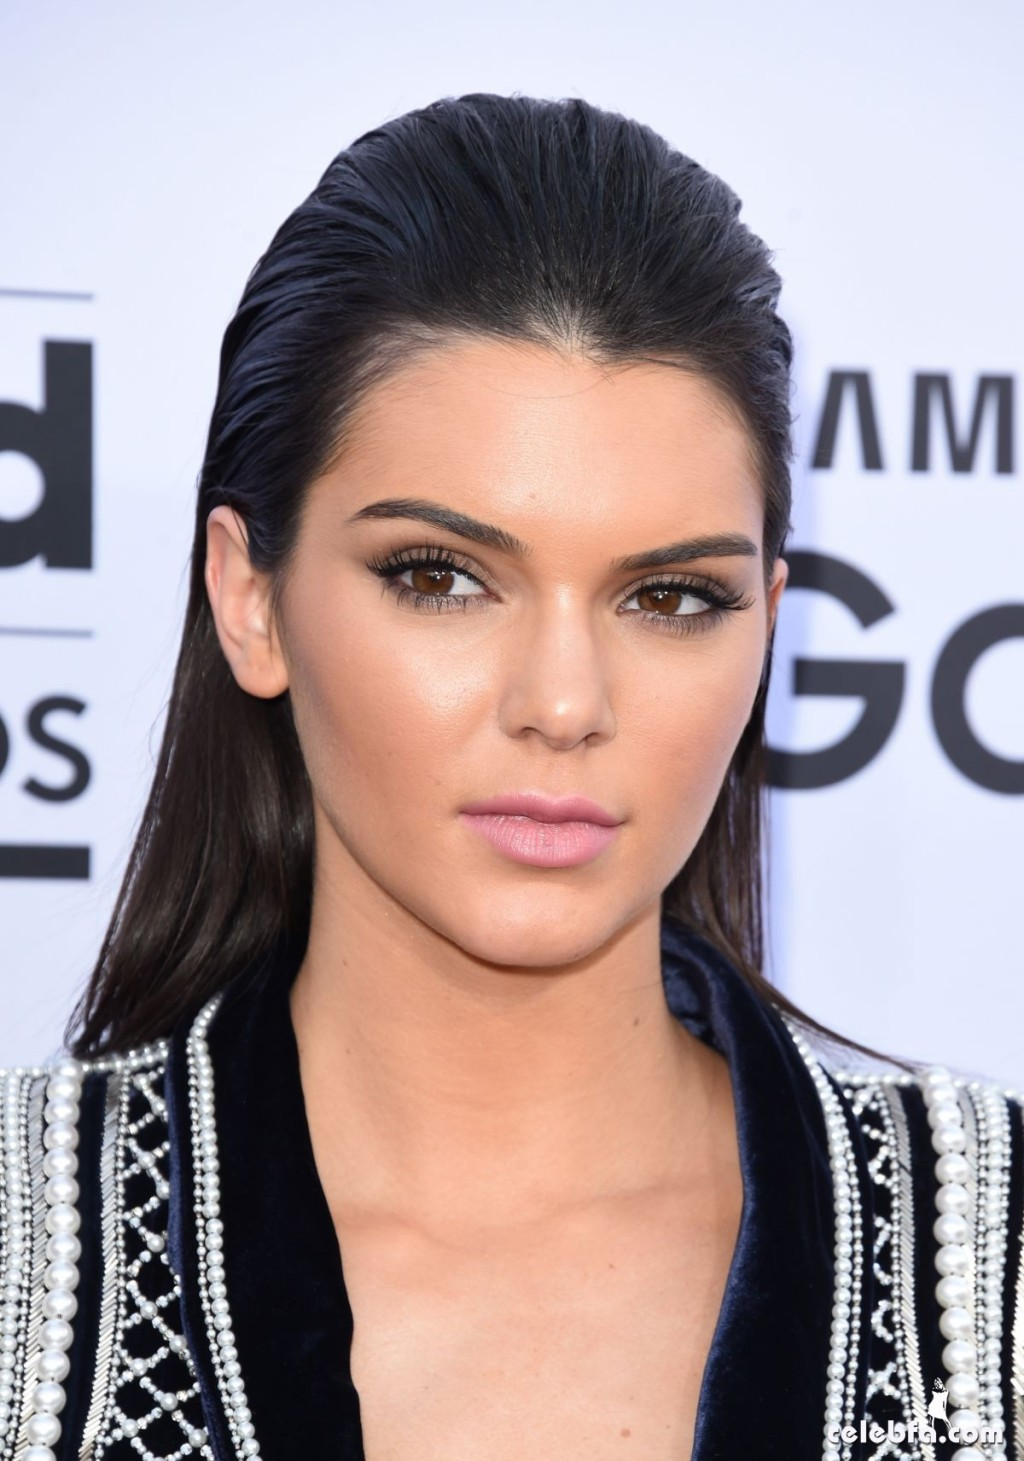 kendall-jenner-at-2015-billboard-music-awards (11)